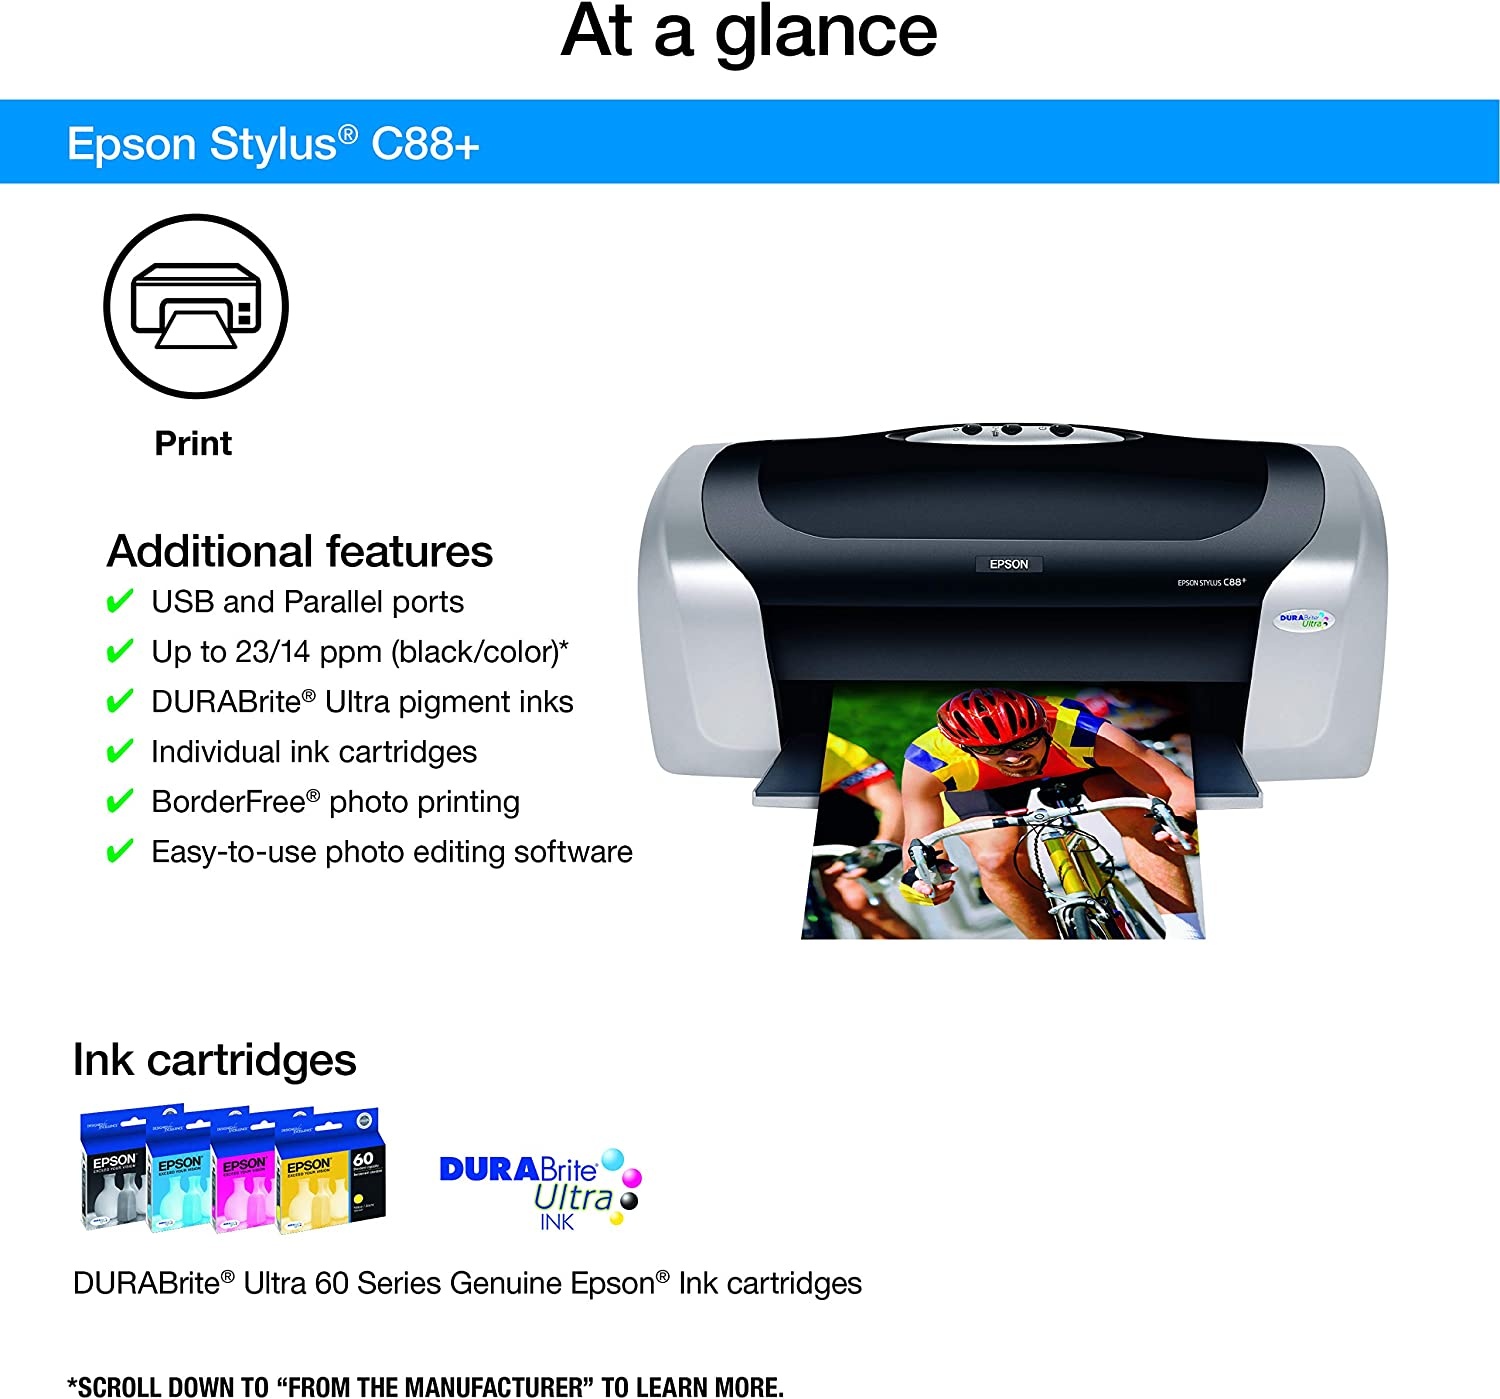 Amazon.com: Epson Stylus C88+ Color Inkjet Printer ...